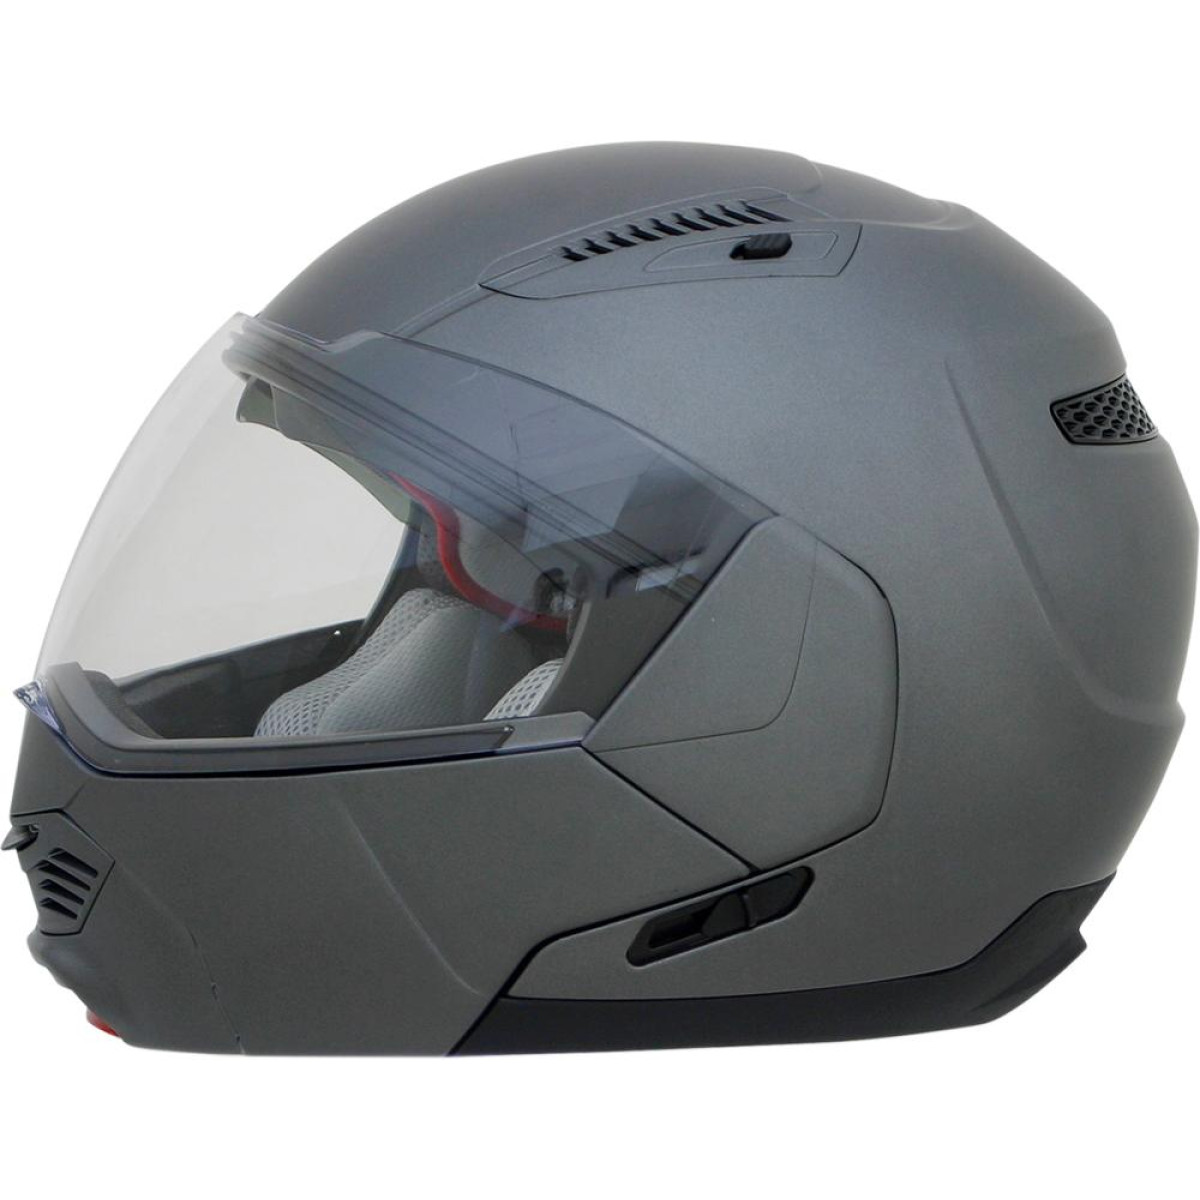 CASQUE FX140 FROST GY XS